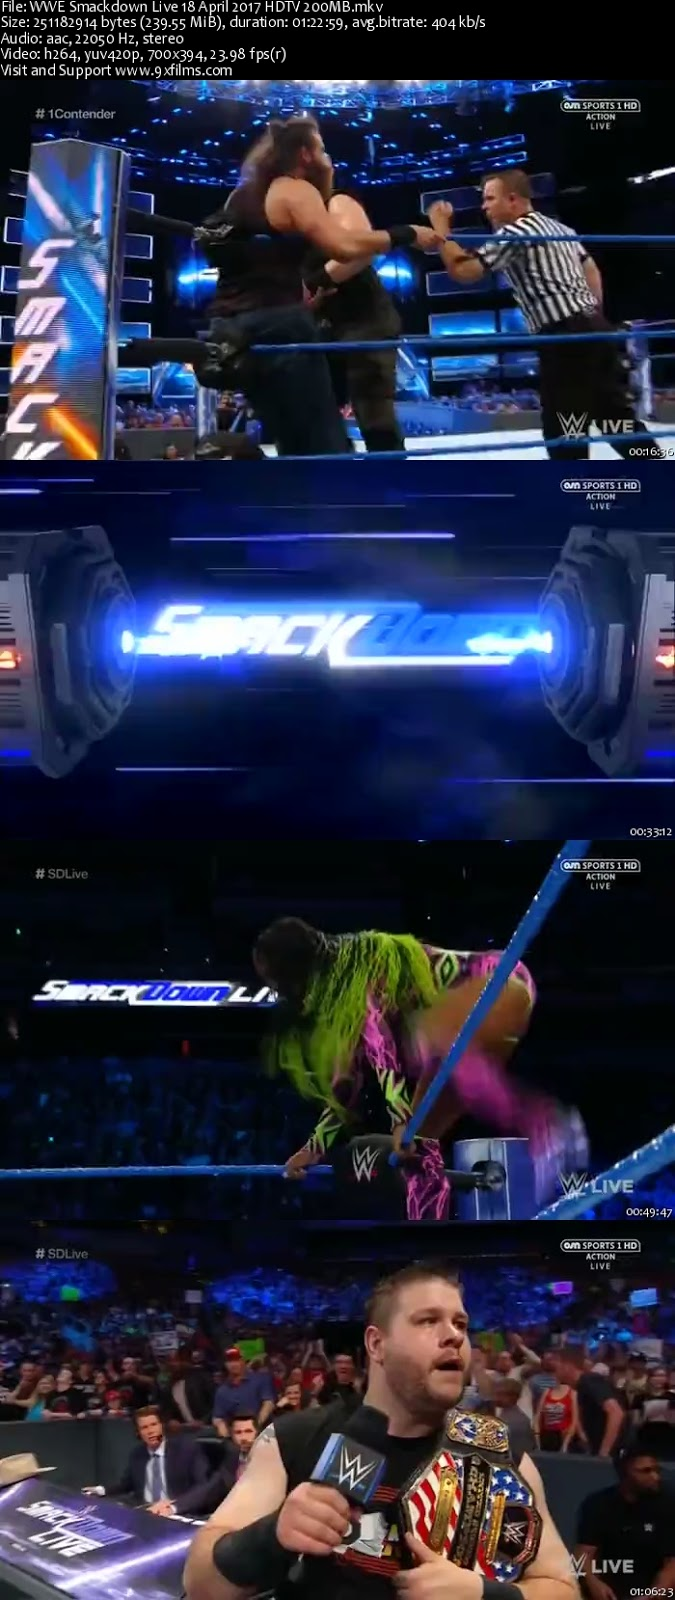 WWE Smackdown Live 18 April 2017 HDTV 480p